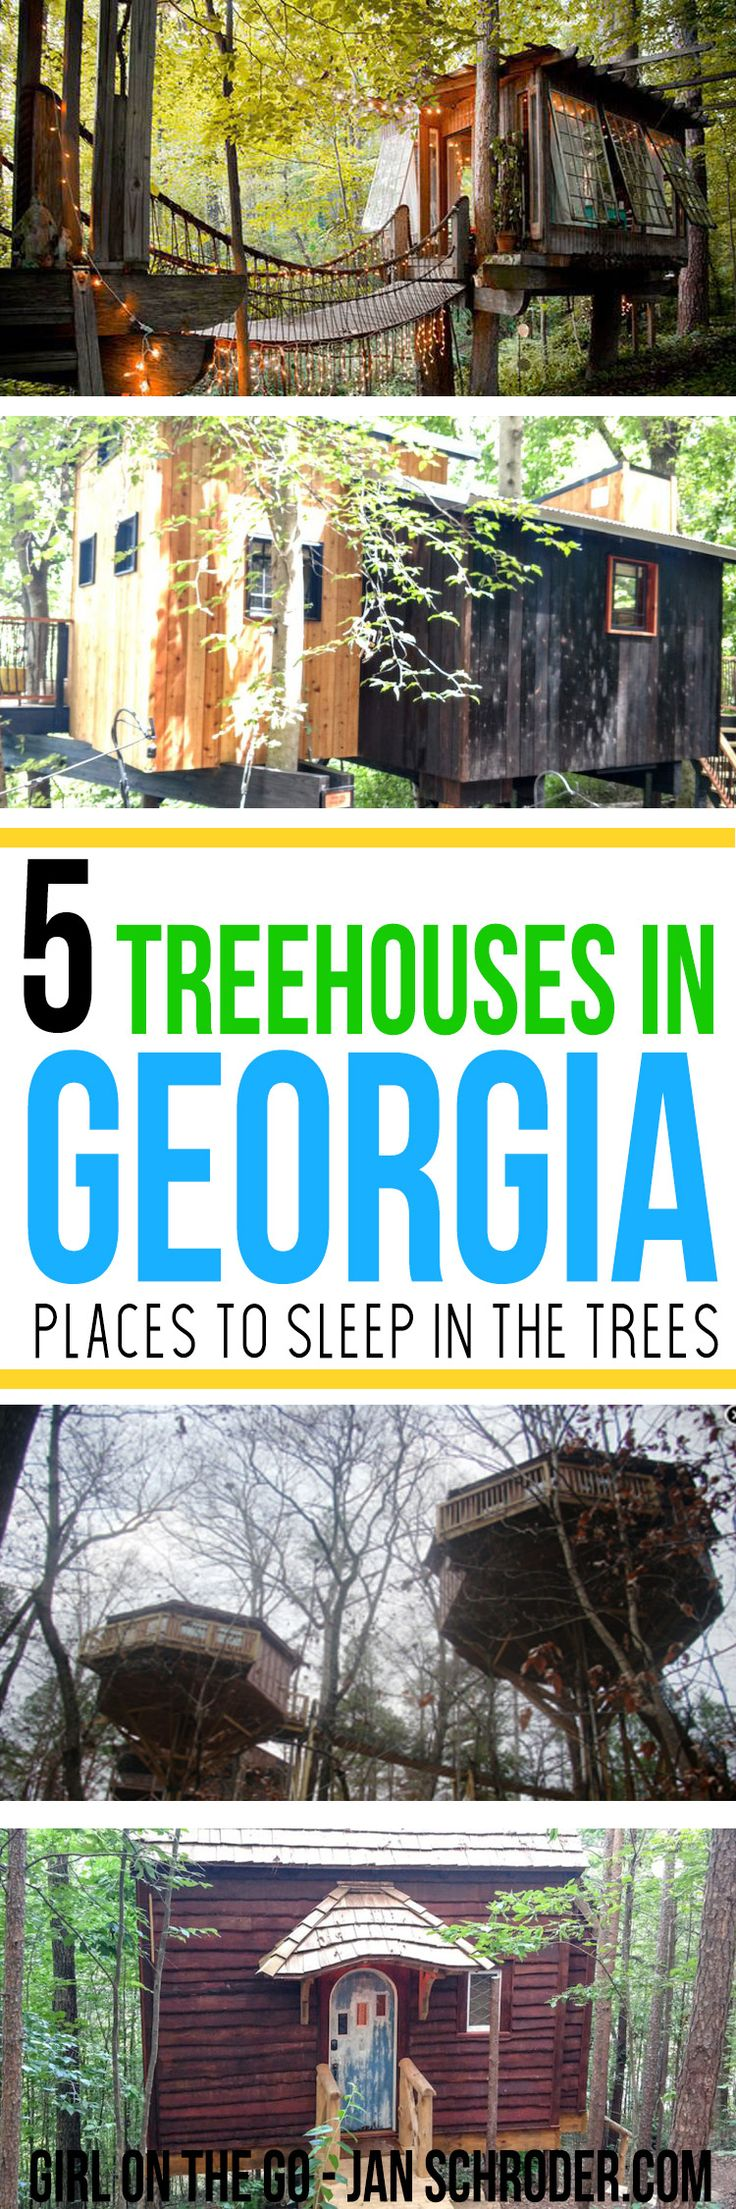 Ever wanted to sleep in the trees? You can! Click to find accommodation in the trees around Atlanta #usa #atlanta **************************************** Atlanta Atlanta Georgia things to do in Treehouse Cool hotels Unique hotels Unique hotels